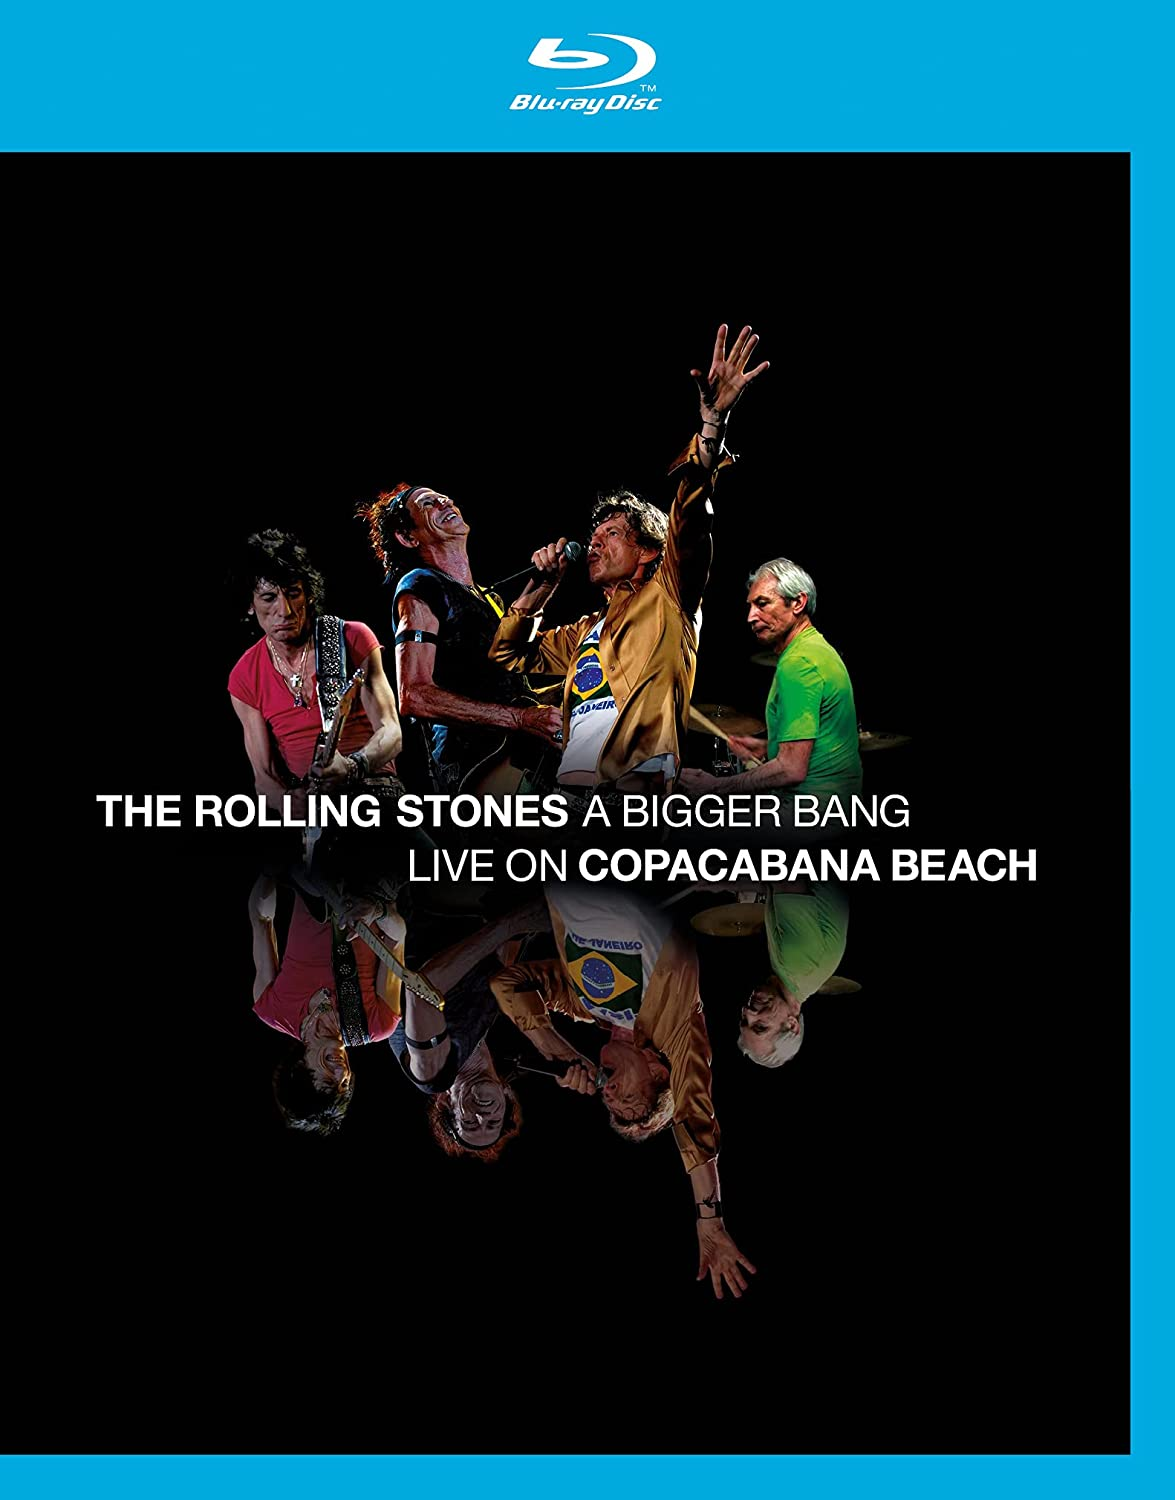 What's the best album of all time by The Rolling Stones. 5